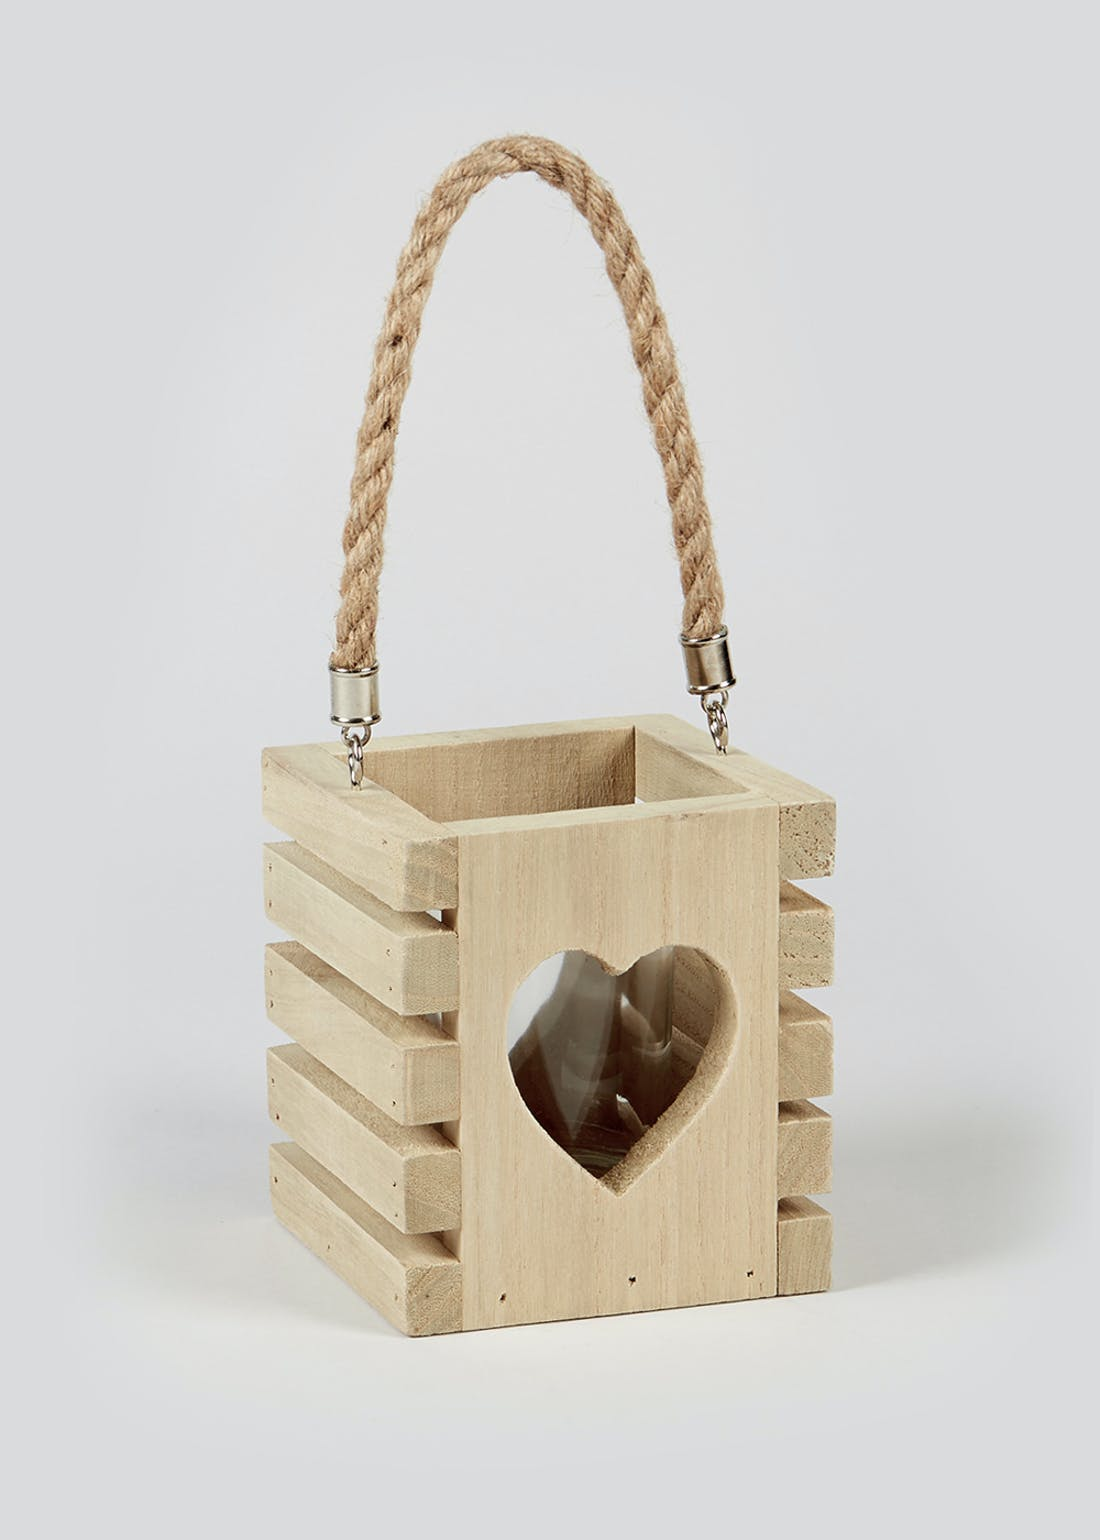 Wooden Heart Tealight Holder (13cm x 11.5cm x 11cm)